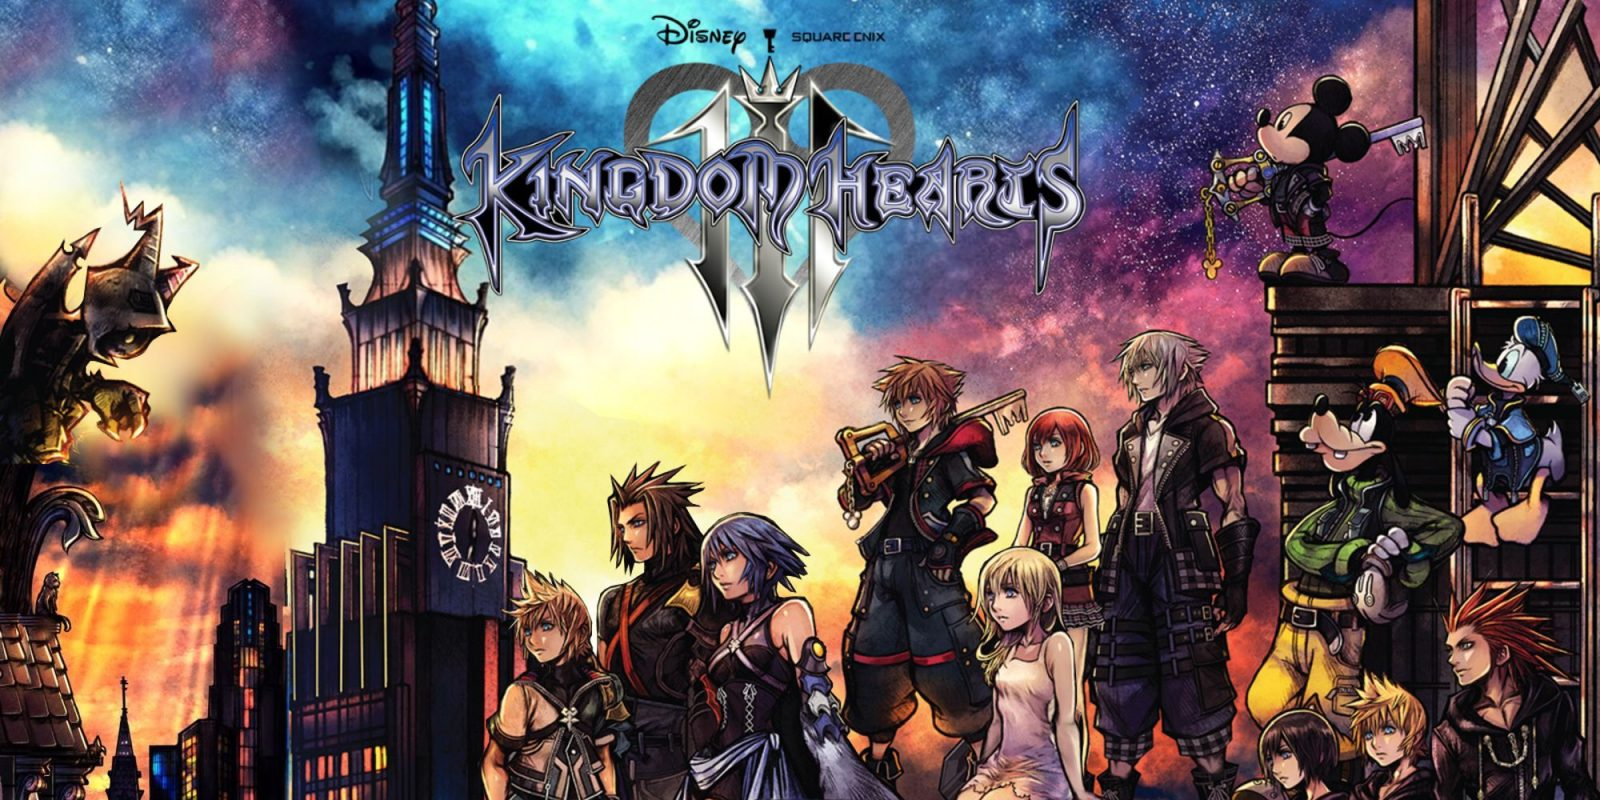 Today's Best Game Deals: Kingdom Hearts III $29, Mega Man 11 from $15.50, more